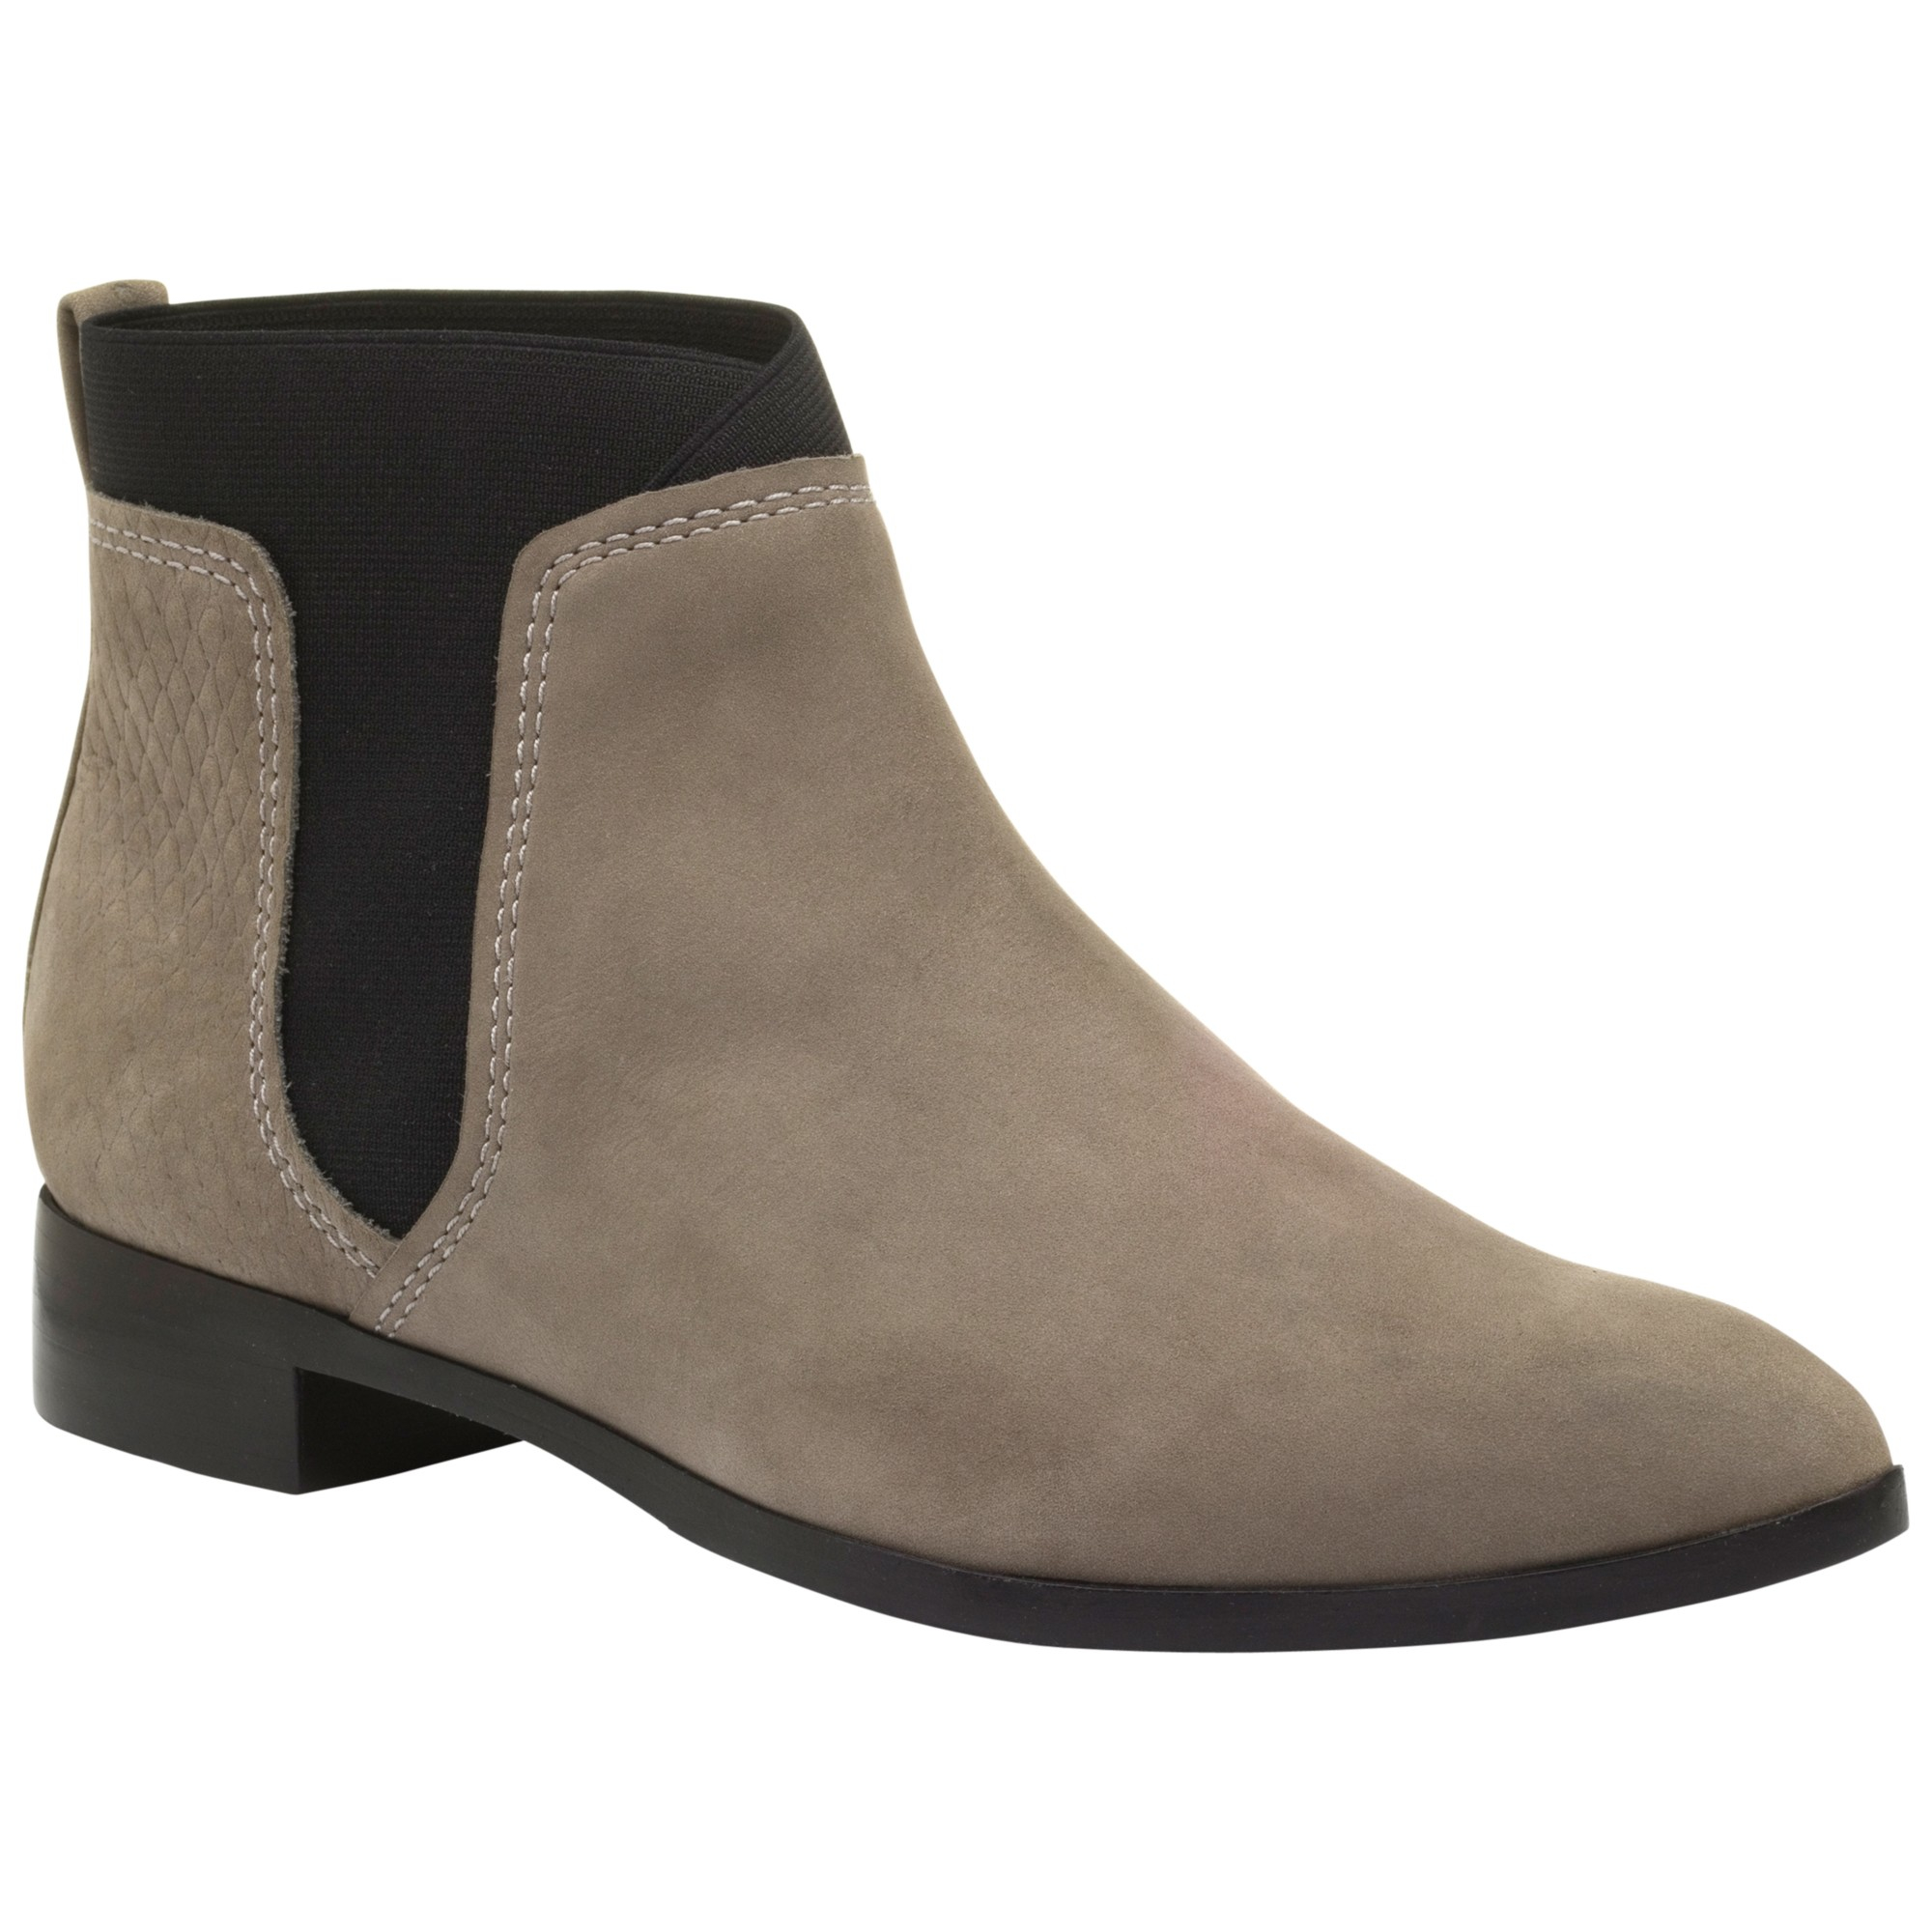 Womens Makin Chelsea Boots Ted Baker 2018 New For Sale Sale Cheap Prices 2JCmag